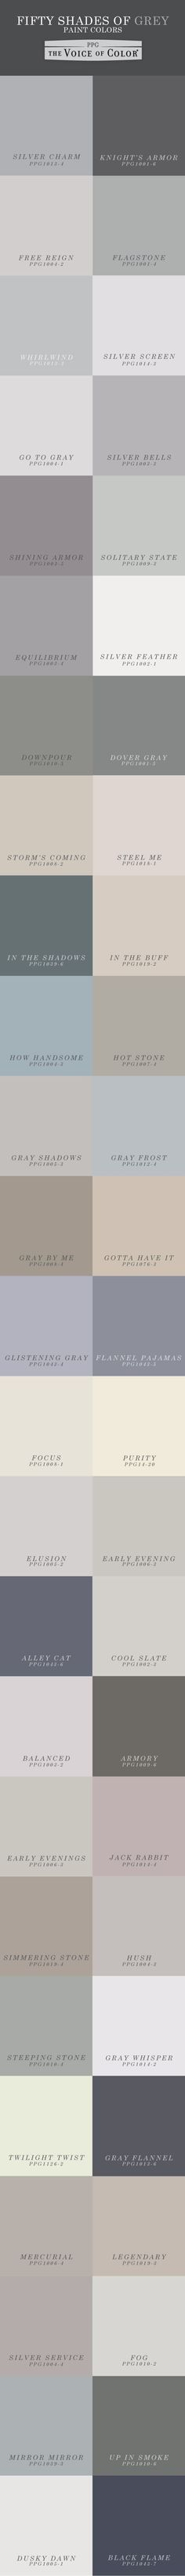 Fifty Shades of Grey Paint Colors from the PPG Voice of Color® palette! Here are 50 shades of grey to fuel your neutral color inspiration and grey color schemes. #50shades by nanette